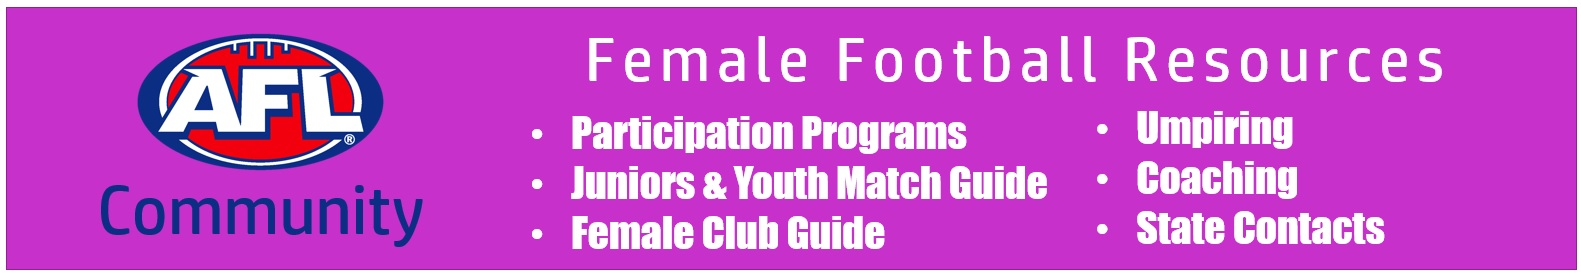 Girls Female Football Resources 2